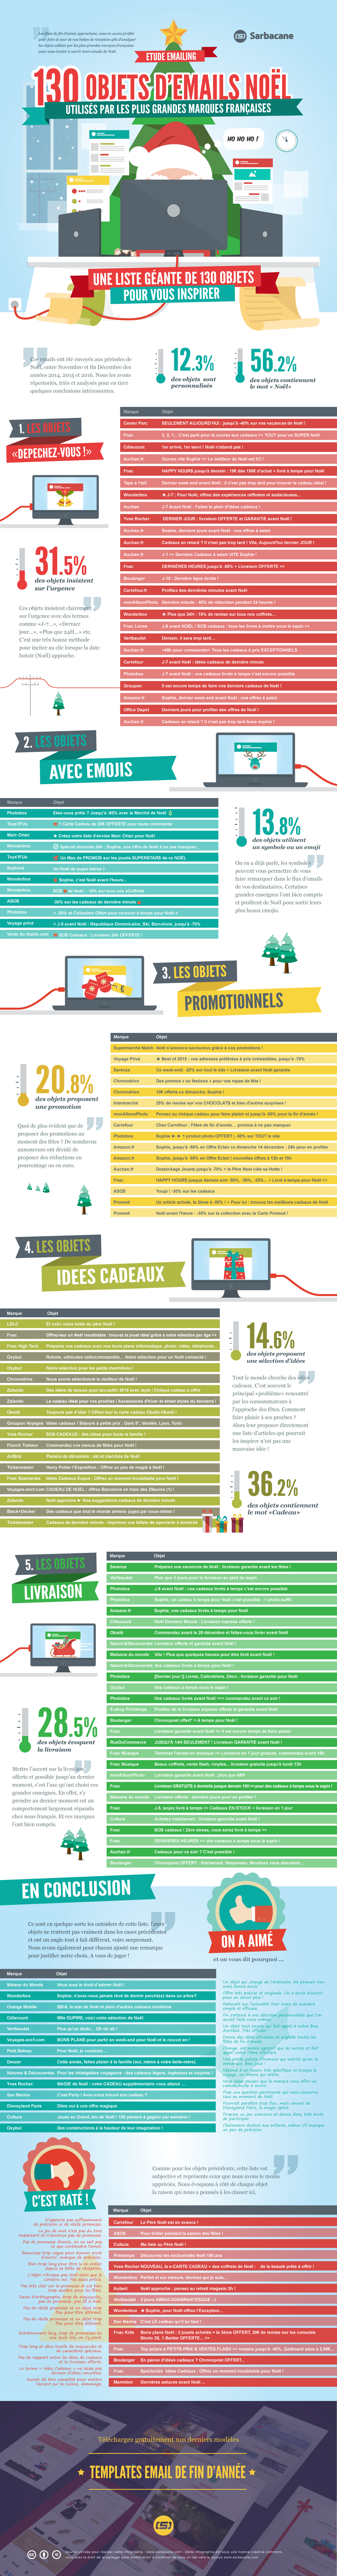 infographie exemples objets emails